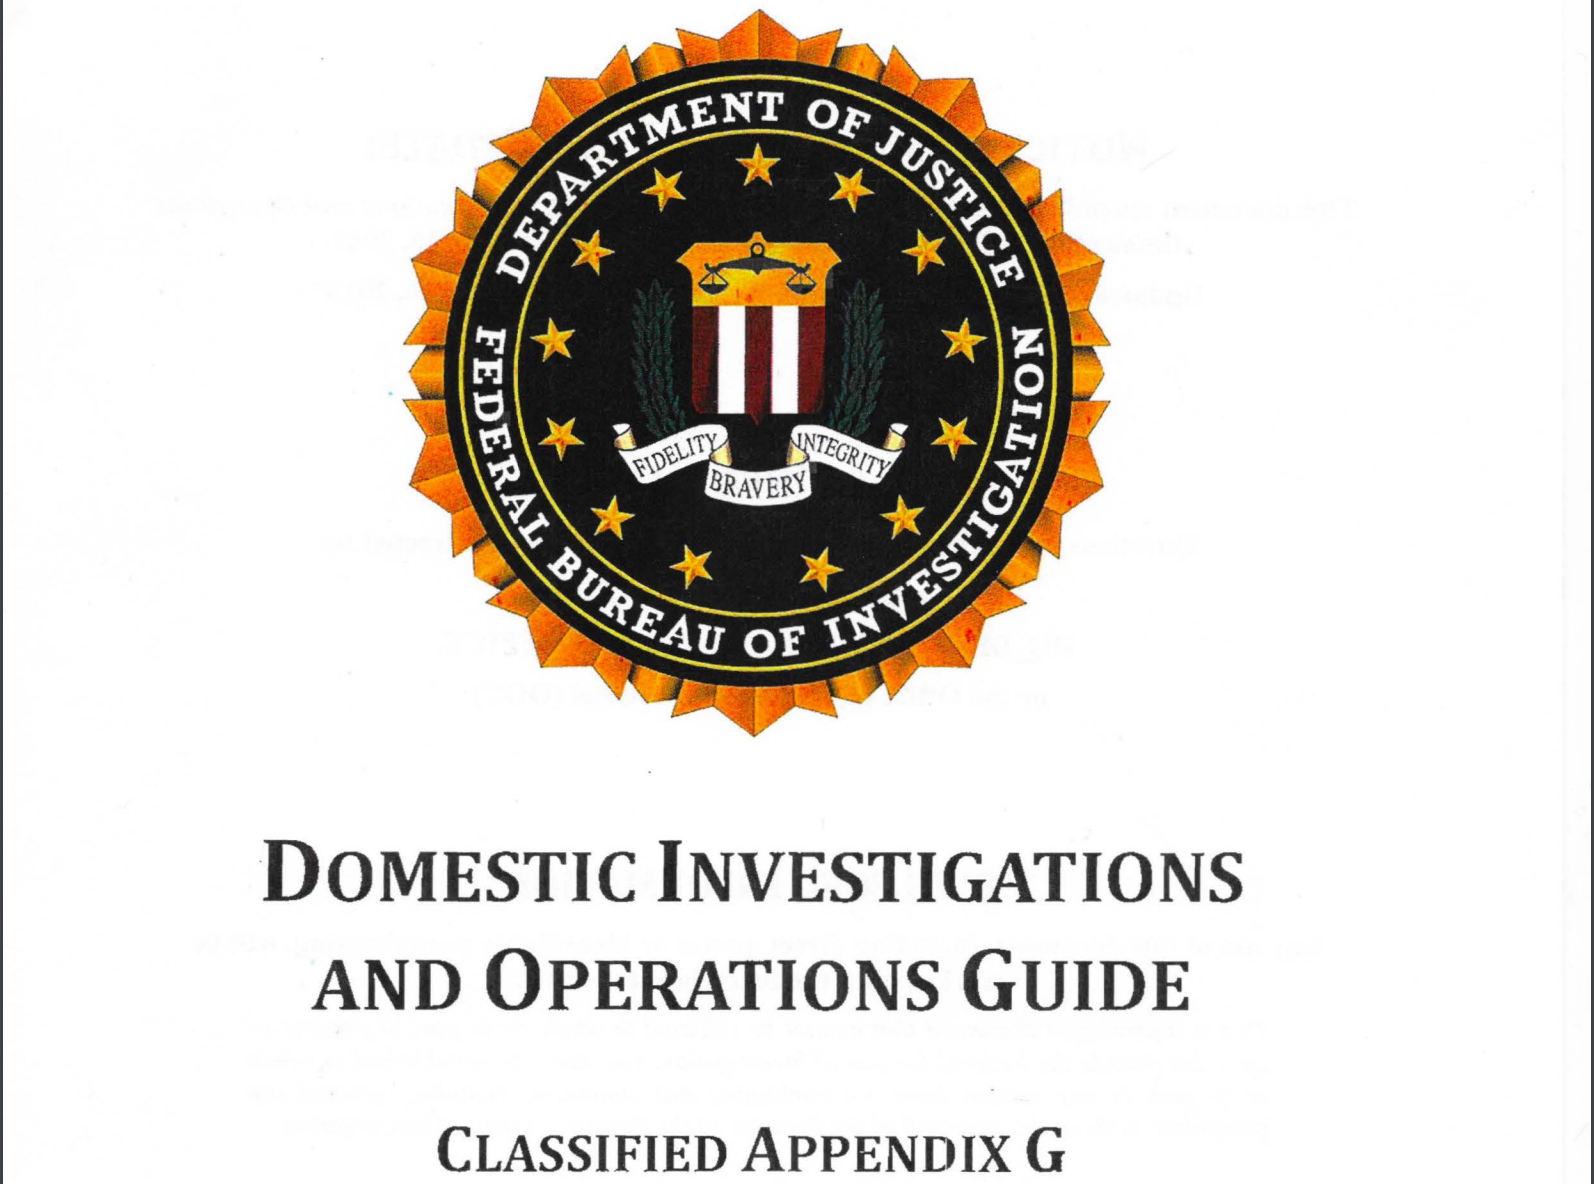 EDITORIAL: Newly Uncovered Secret Rules Allowing FBI To Spy on Journalists Are Outrageous